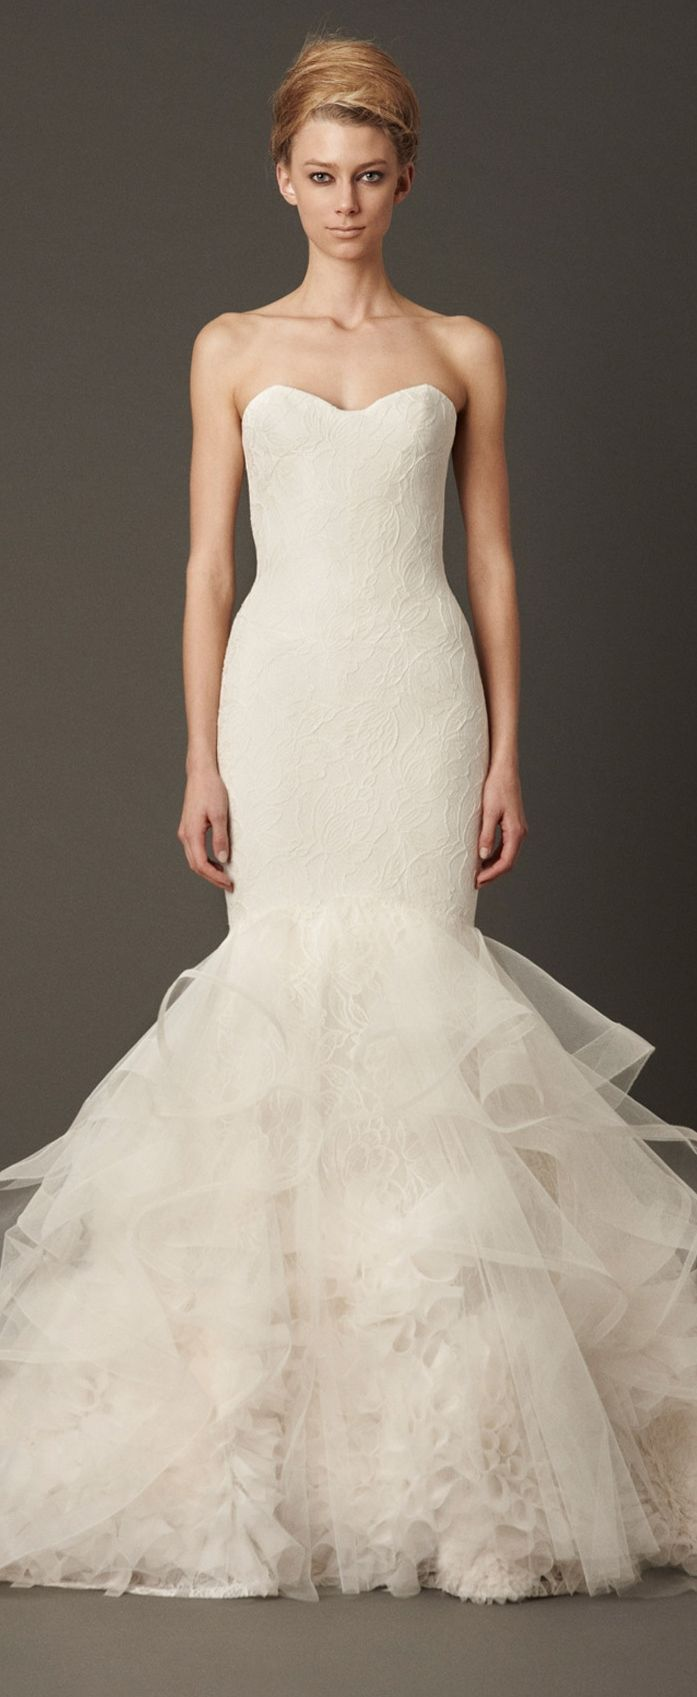 295 best less j.crew...more vera wang. images on Pinterest | Wedding ...